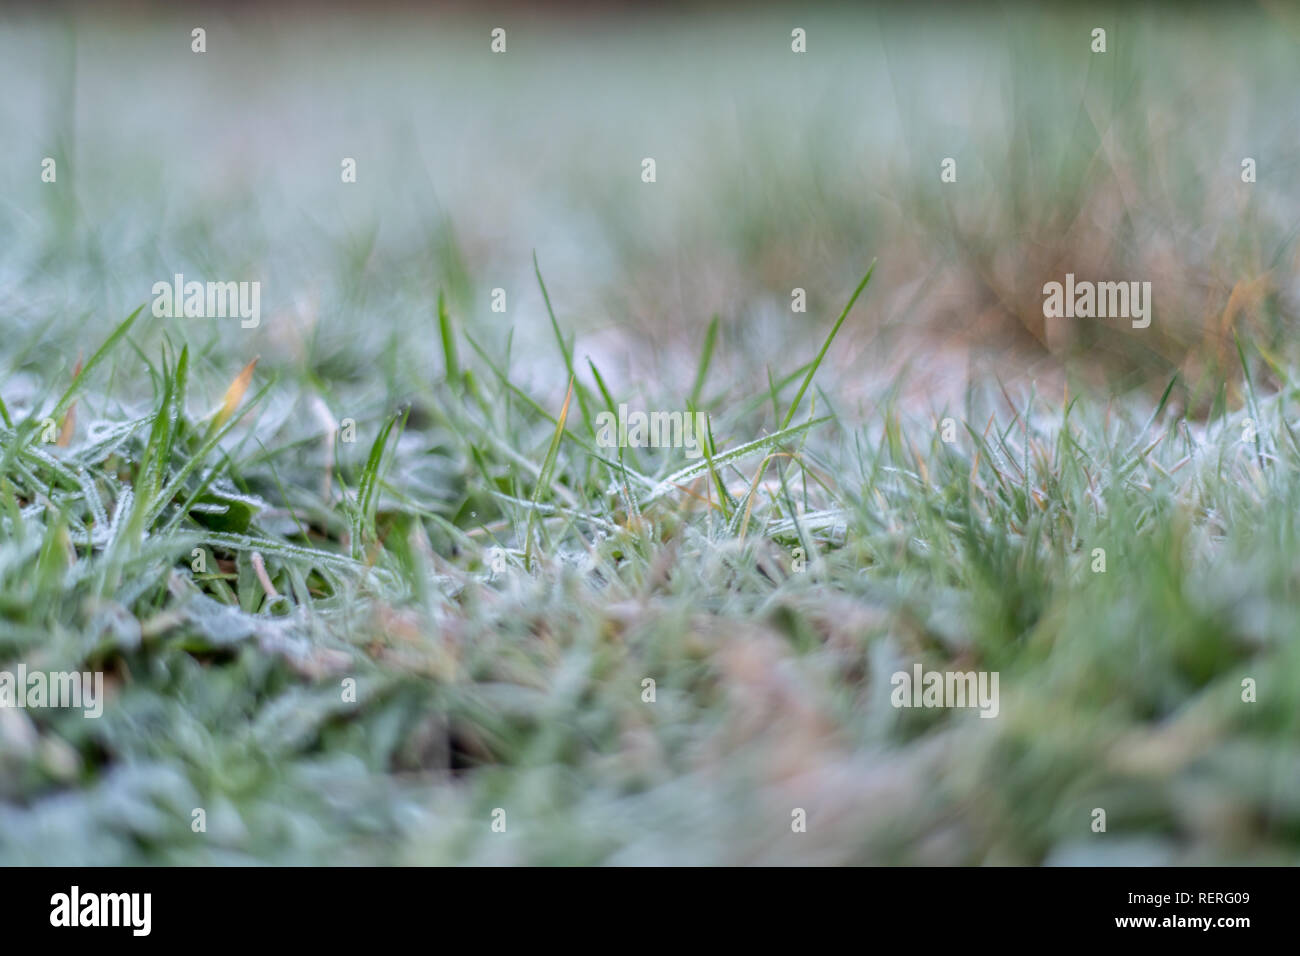 Poole, Dorset, UK. 23rd January 2019. Frosty grass and rooftops on a January morning on the south coast of England as the UK enters a cold snap. Credit: Thomas Faull/Alamy Live News Stock Photo